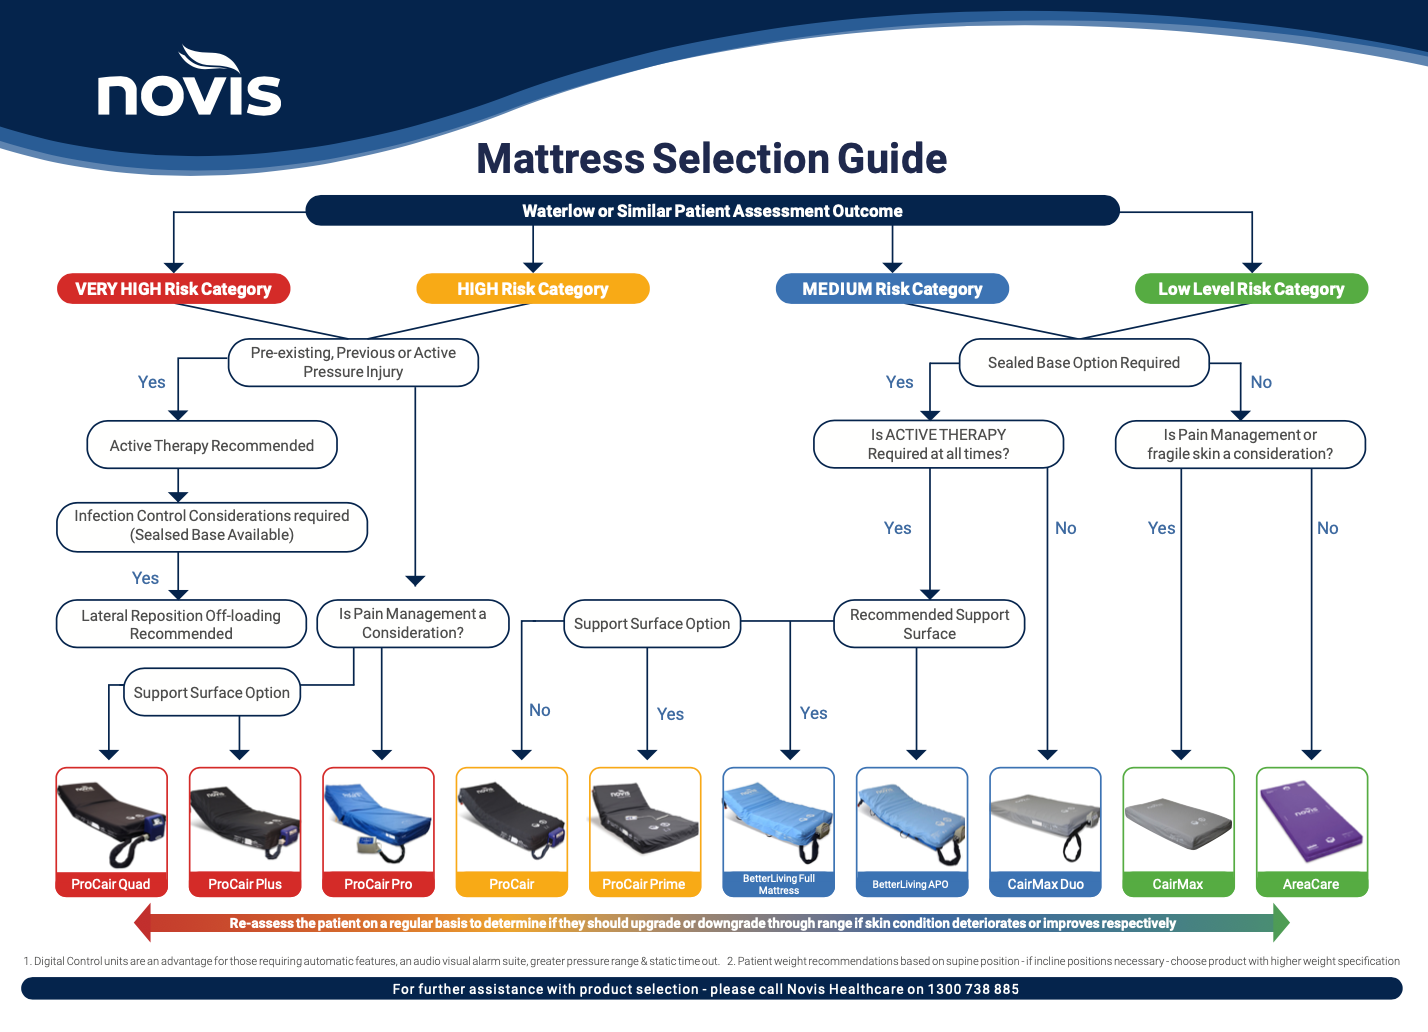 Download mattress selection guide